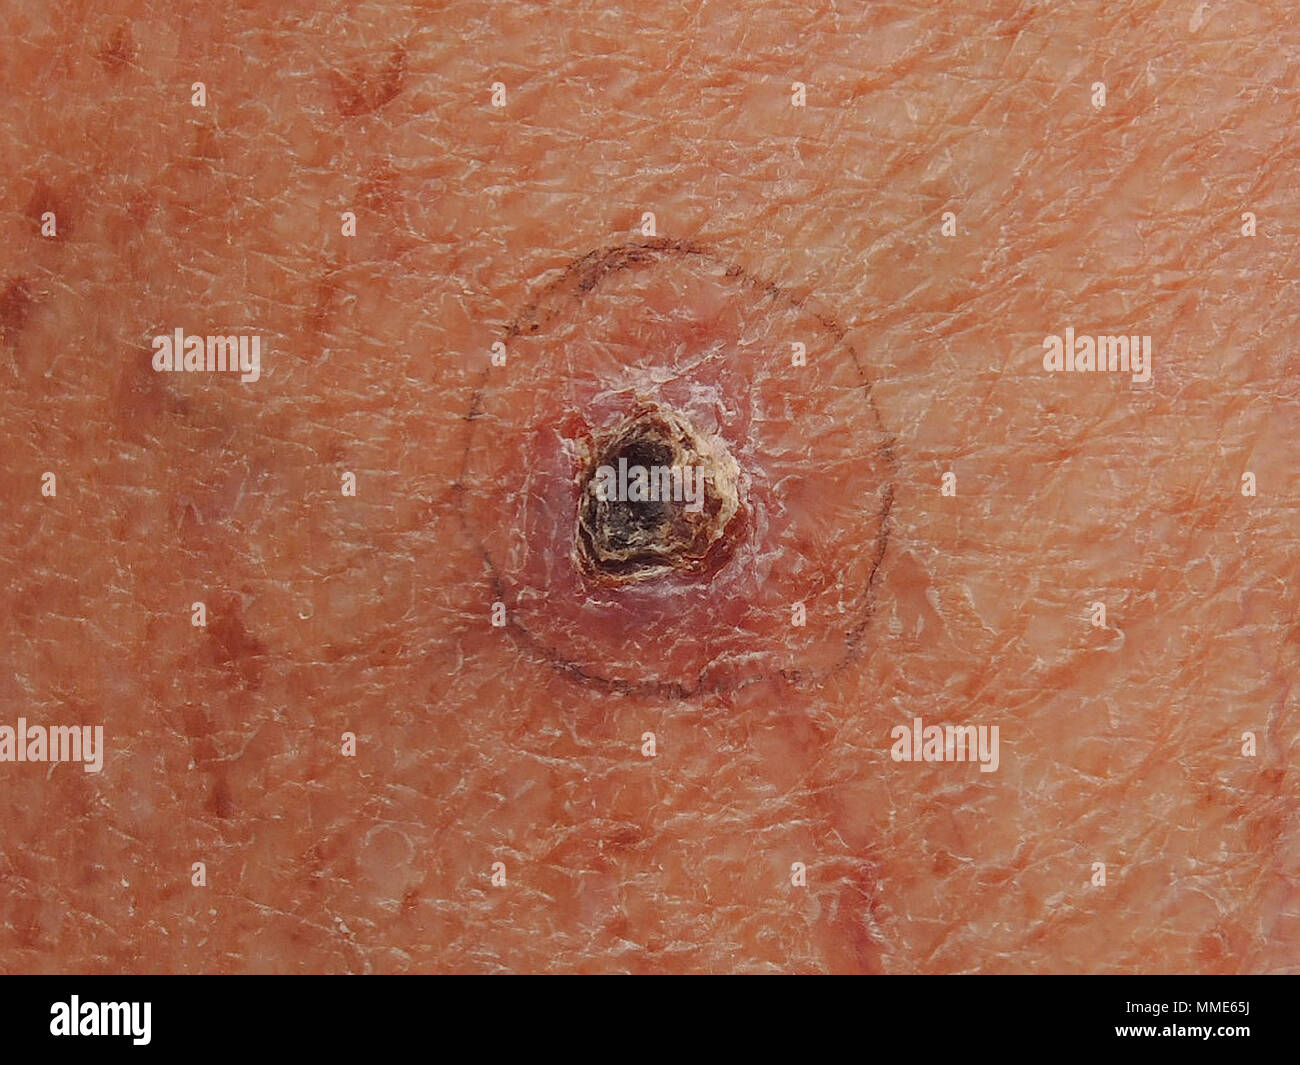 BASAL CELL CARCINOMA - Stock Image